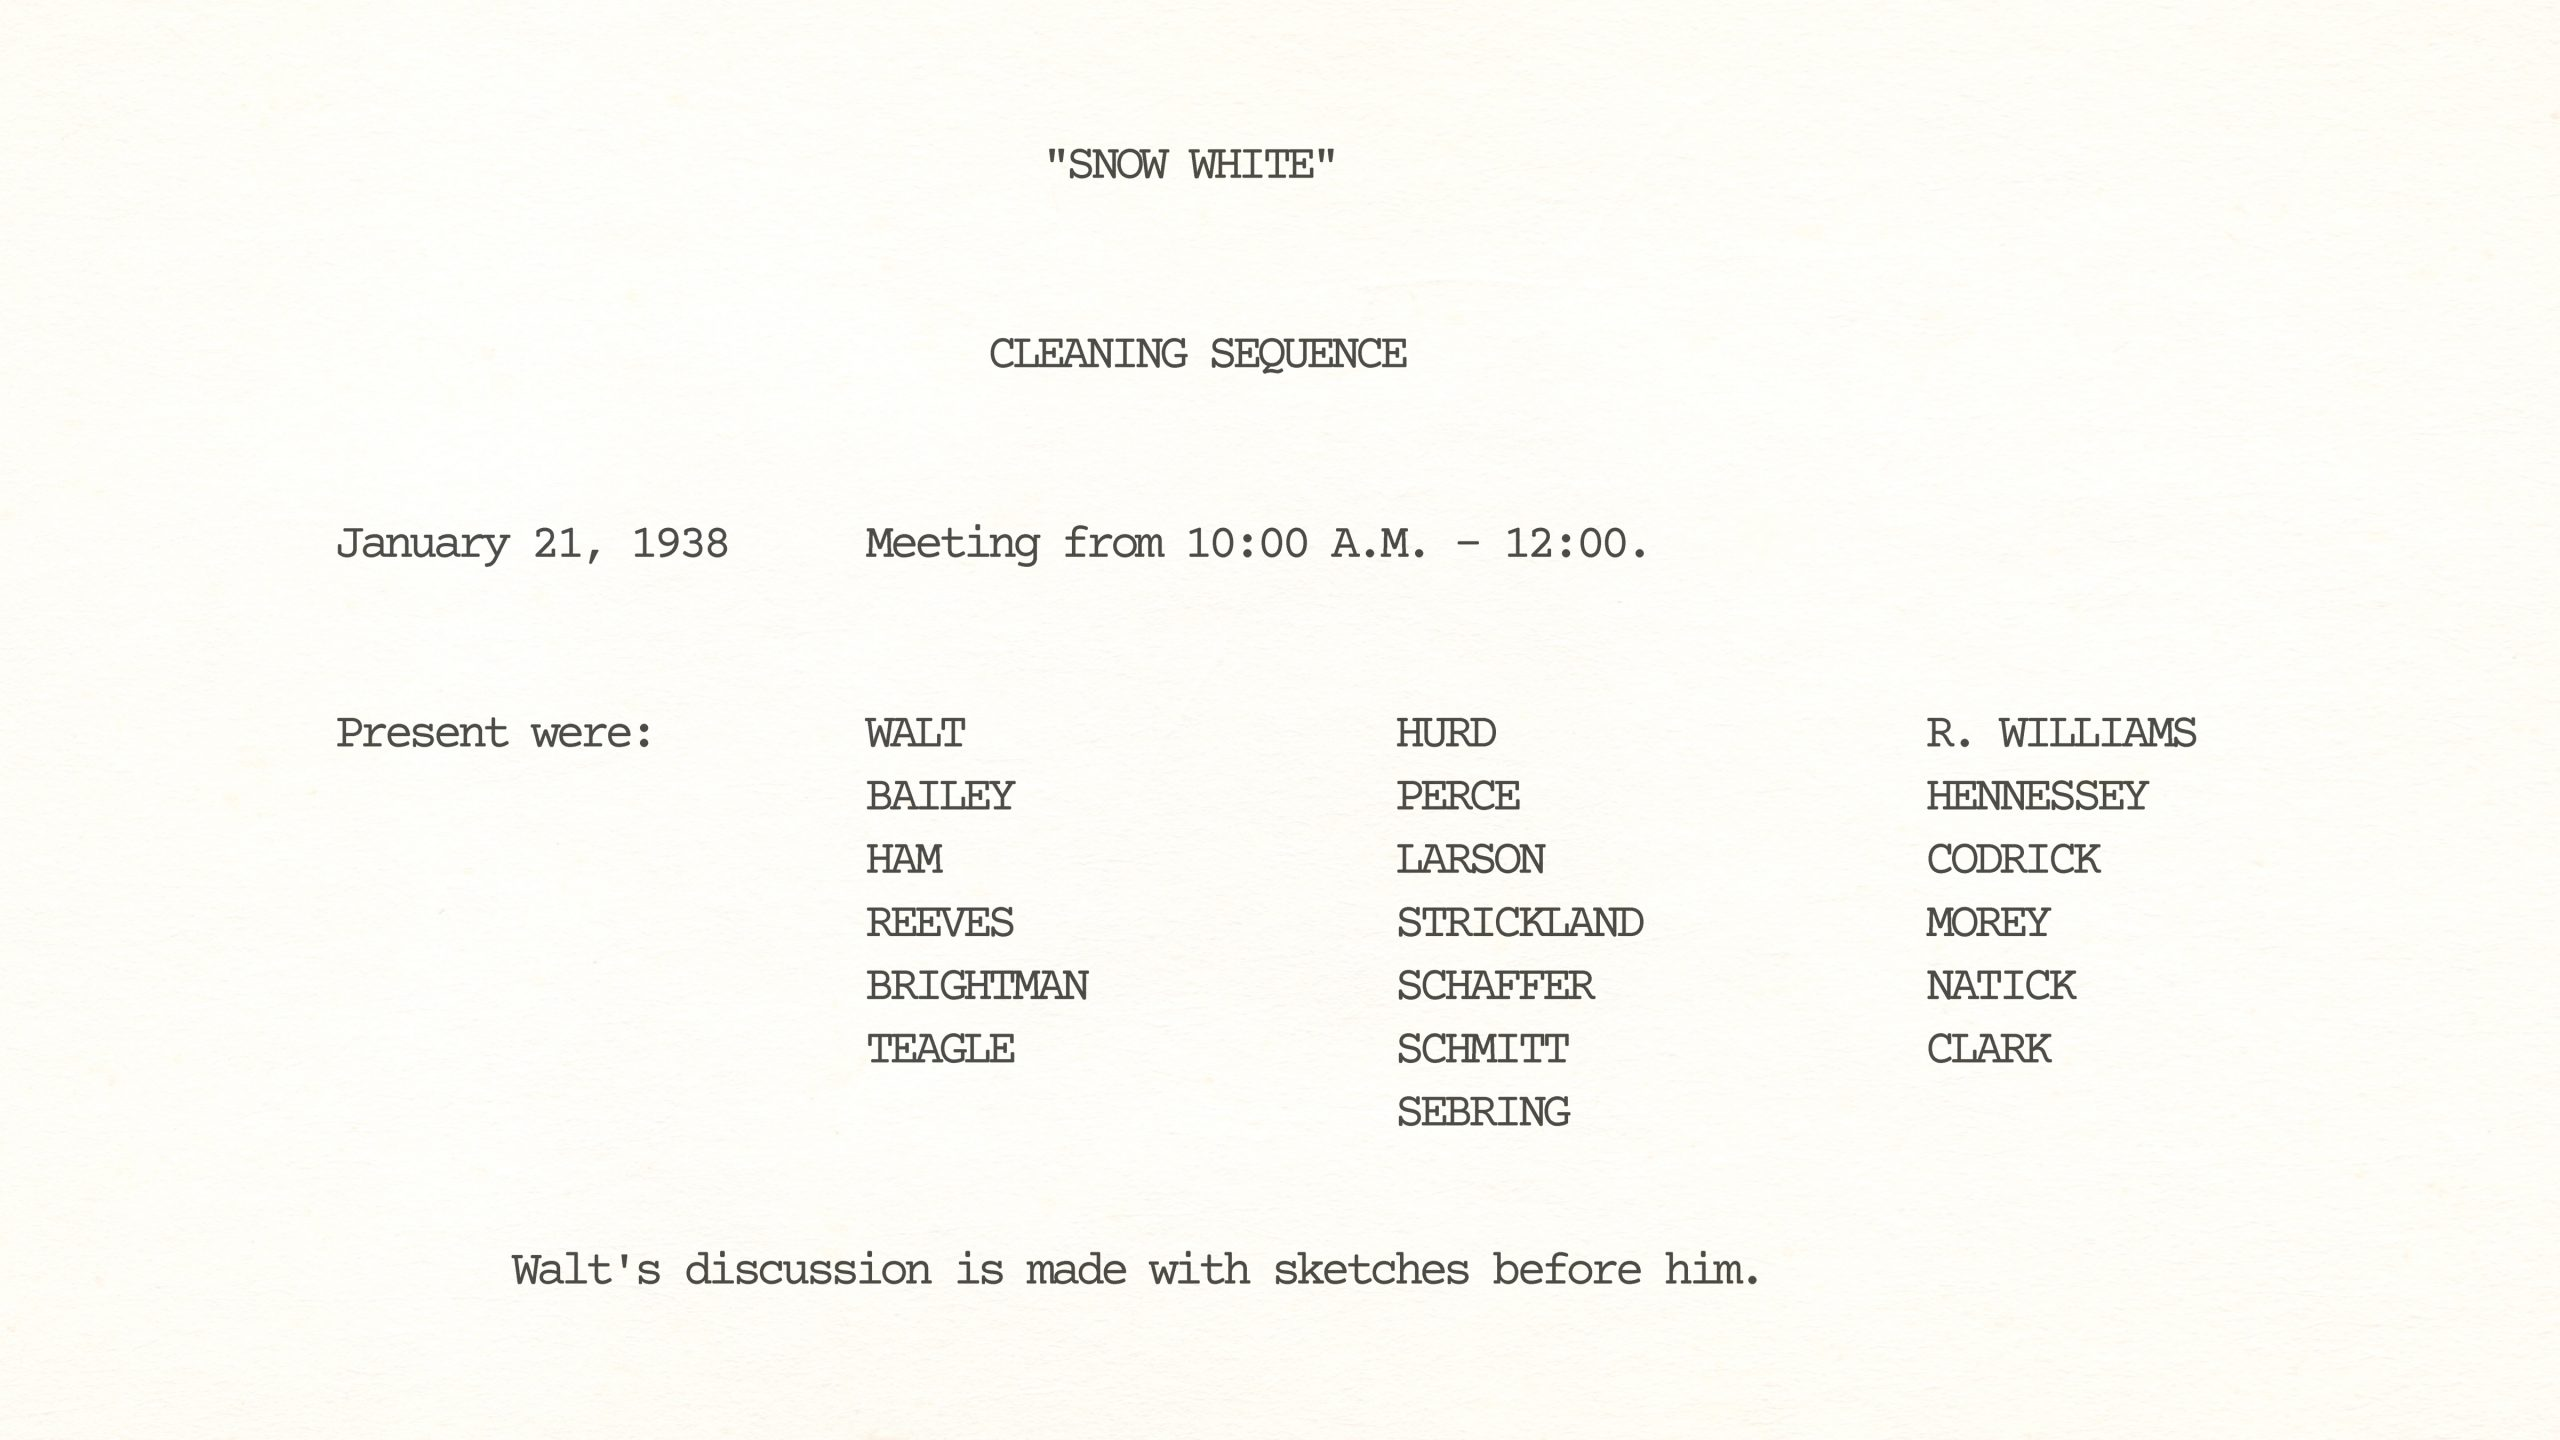 Story Conference on Snow White's CLEANING SEQUENCE, January 21st, 1936